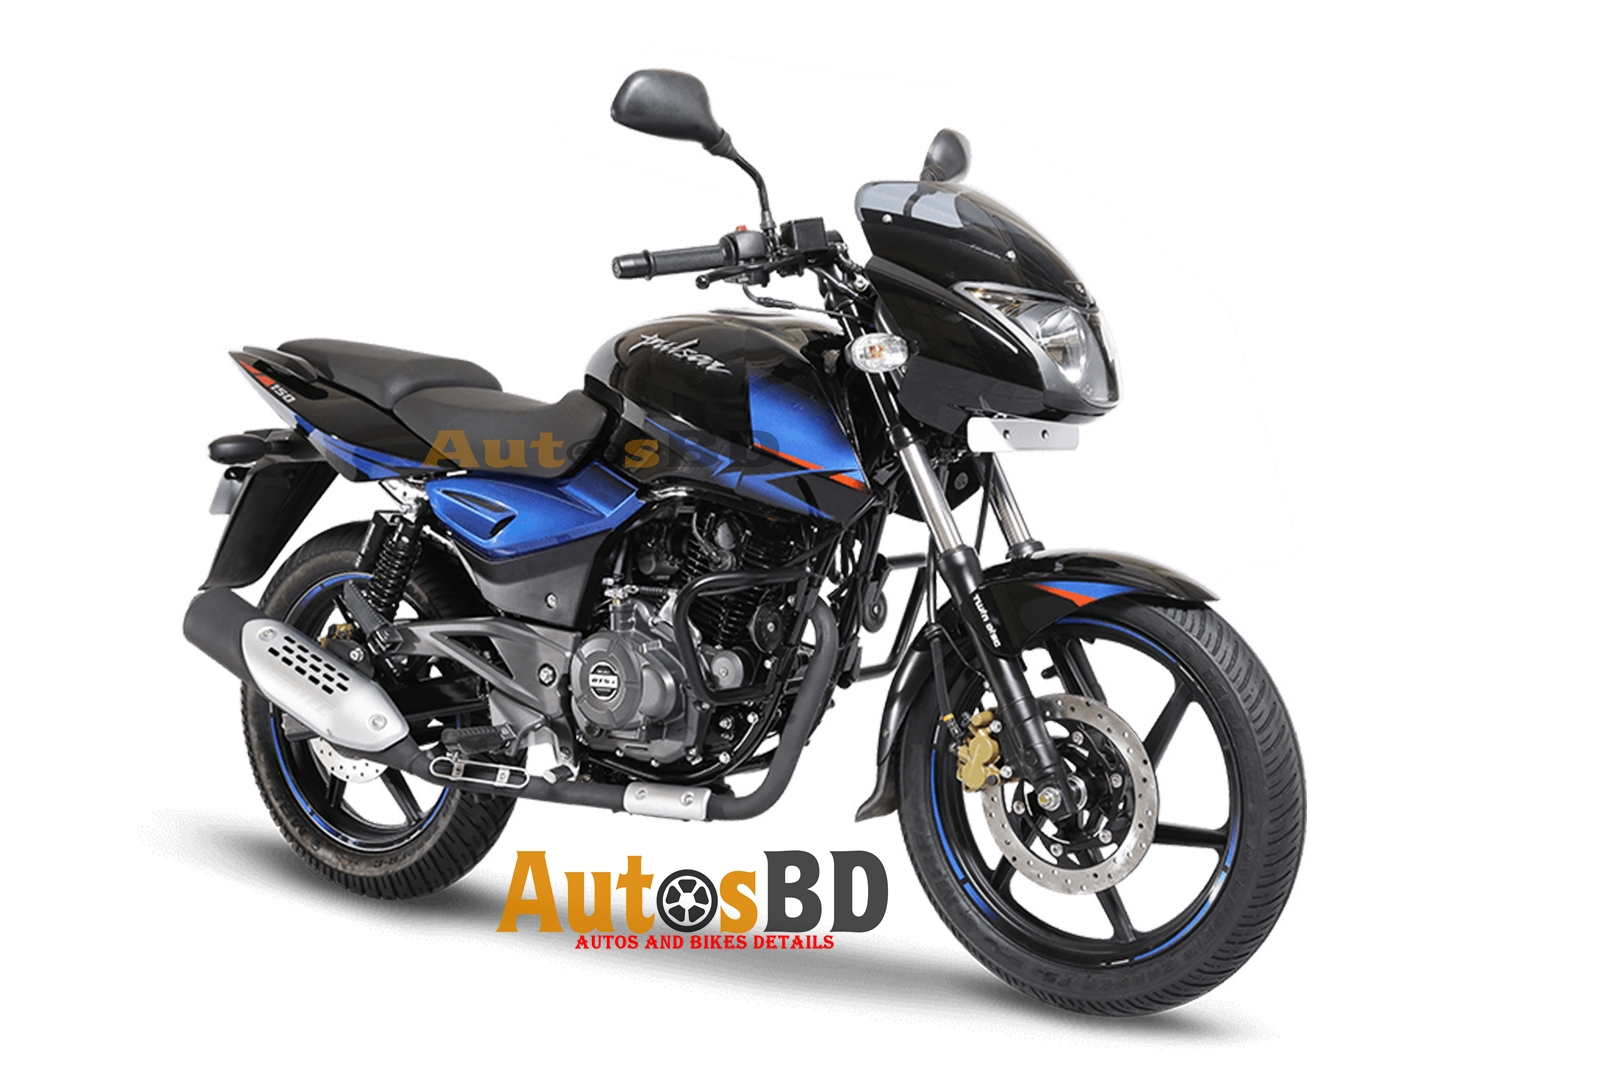 Bajaj Pulsar 150 Twin Disc Specification